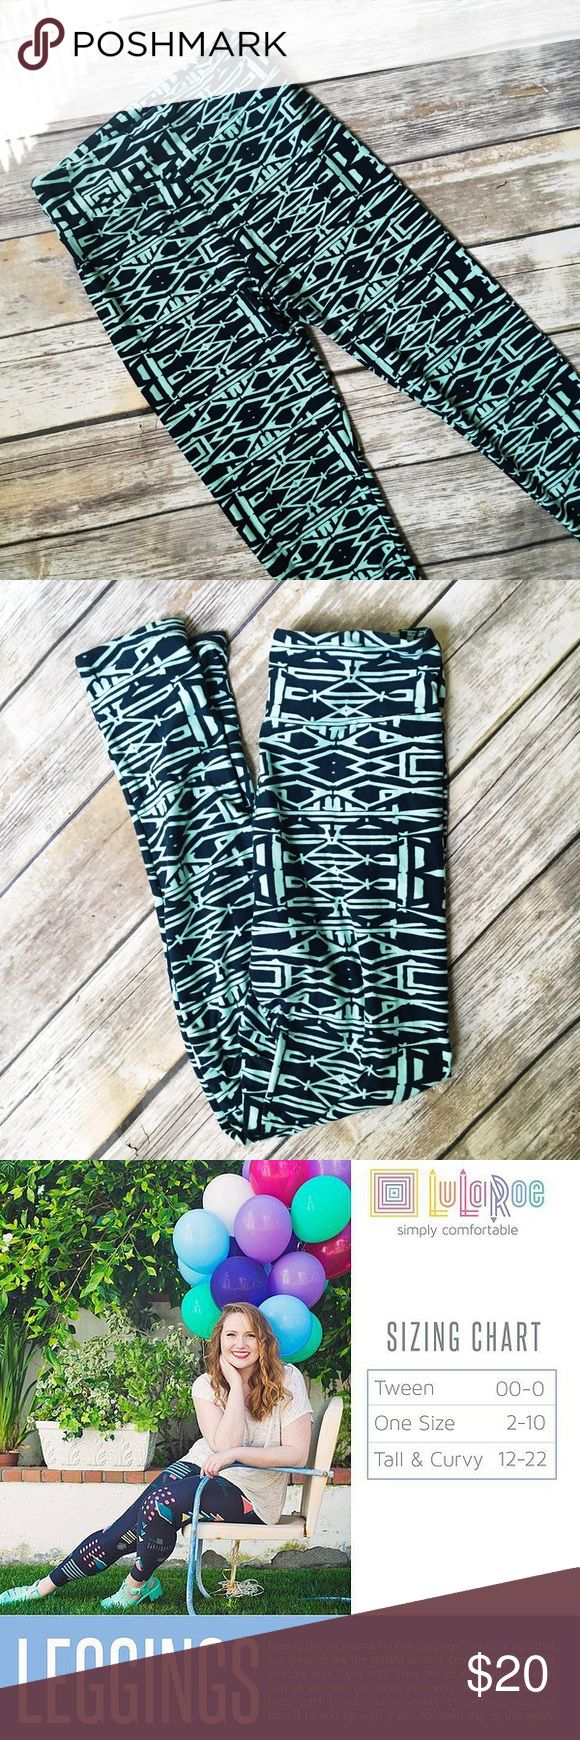 Lularoe One Size Green Tribal Print Leggings  ★ Great condition! ★ These awesome tribal print leggings from Lularoe are a must have and perfect for any season!  ★ NO TRADES OR MODELING!  ★ Poshmark Suggested User! Shop with confidence. :) LuLaRoe Pants Leggings